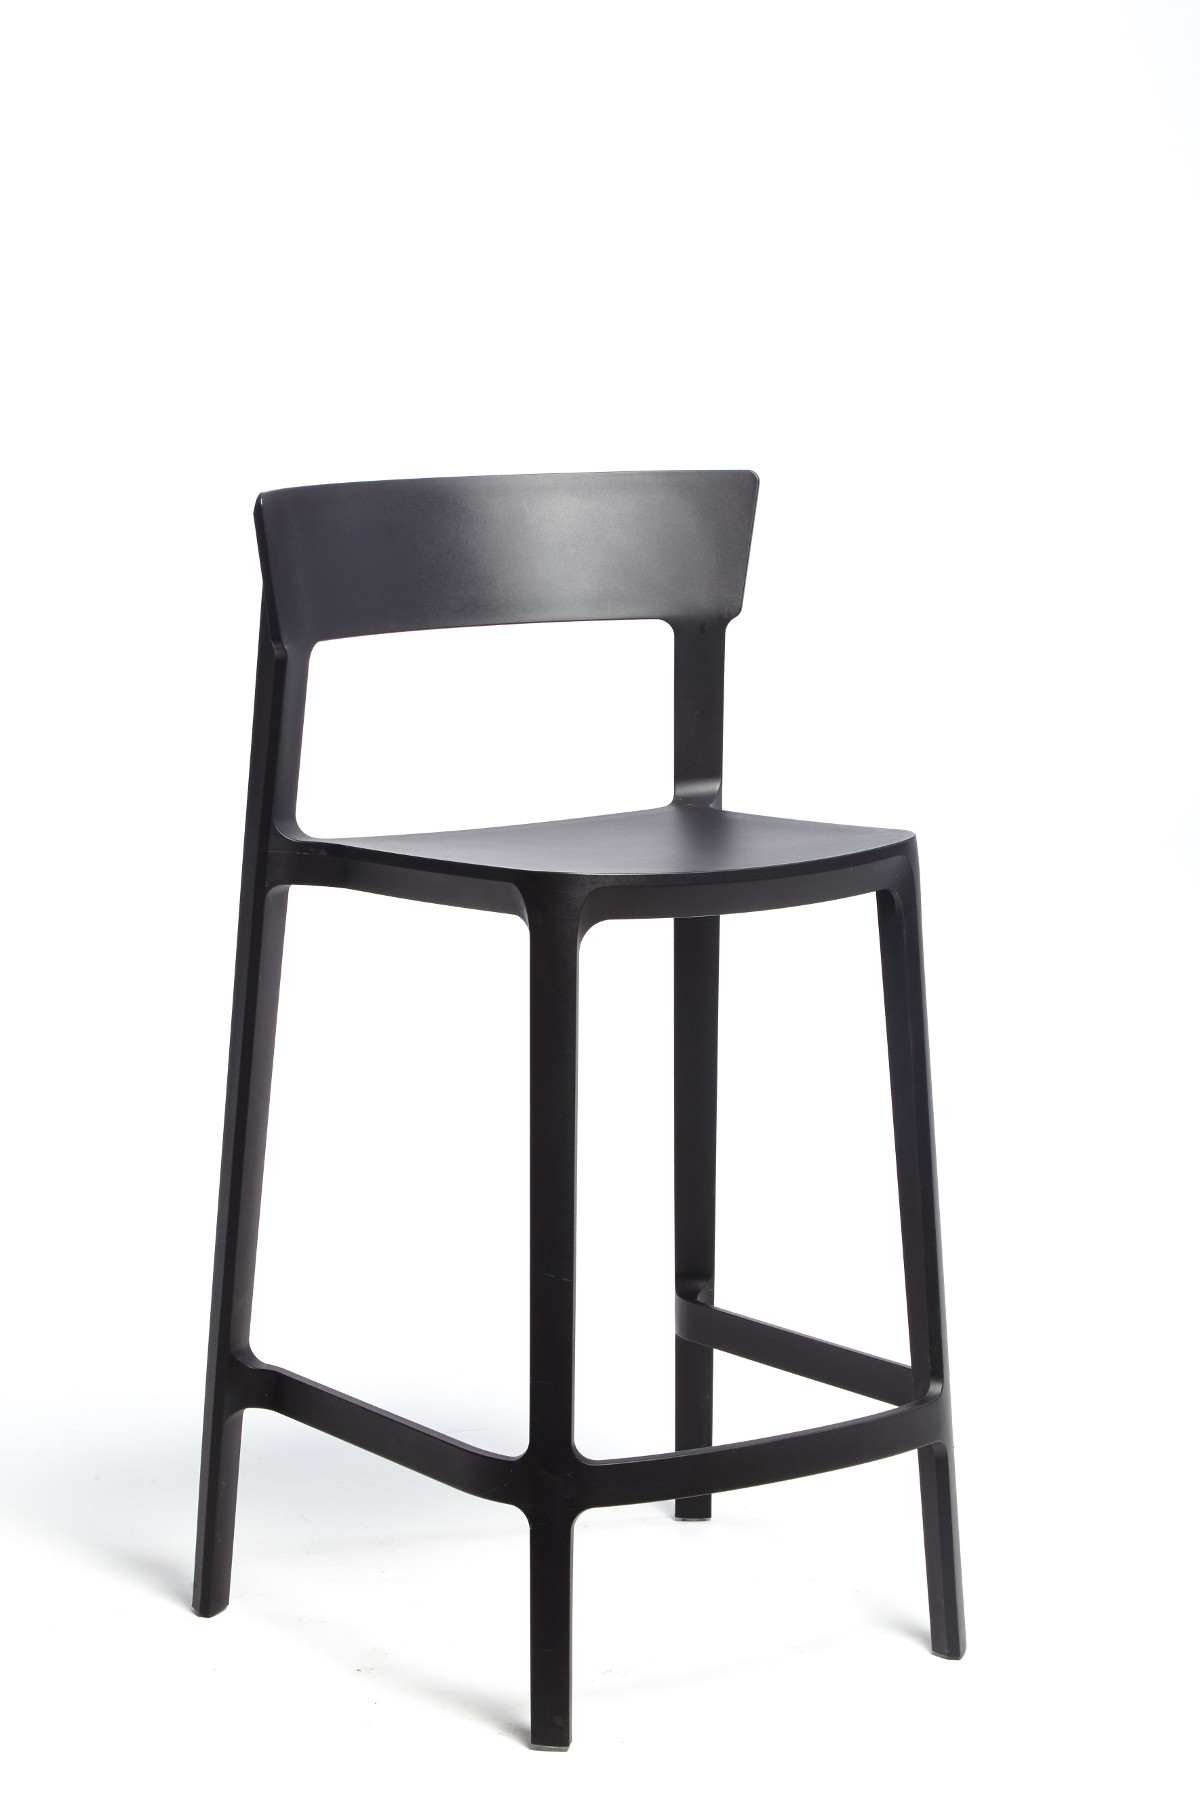 Calligaris Black Skin Stool